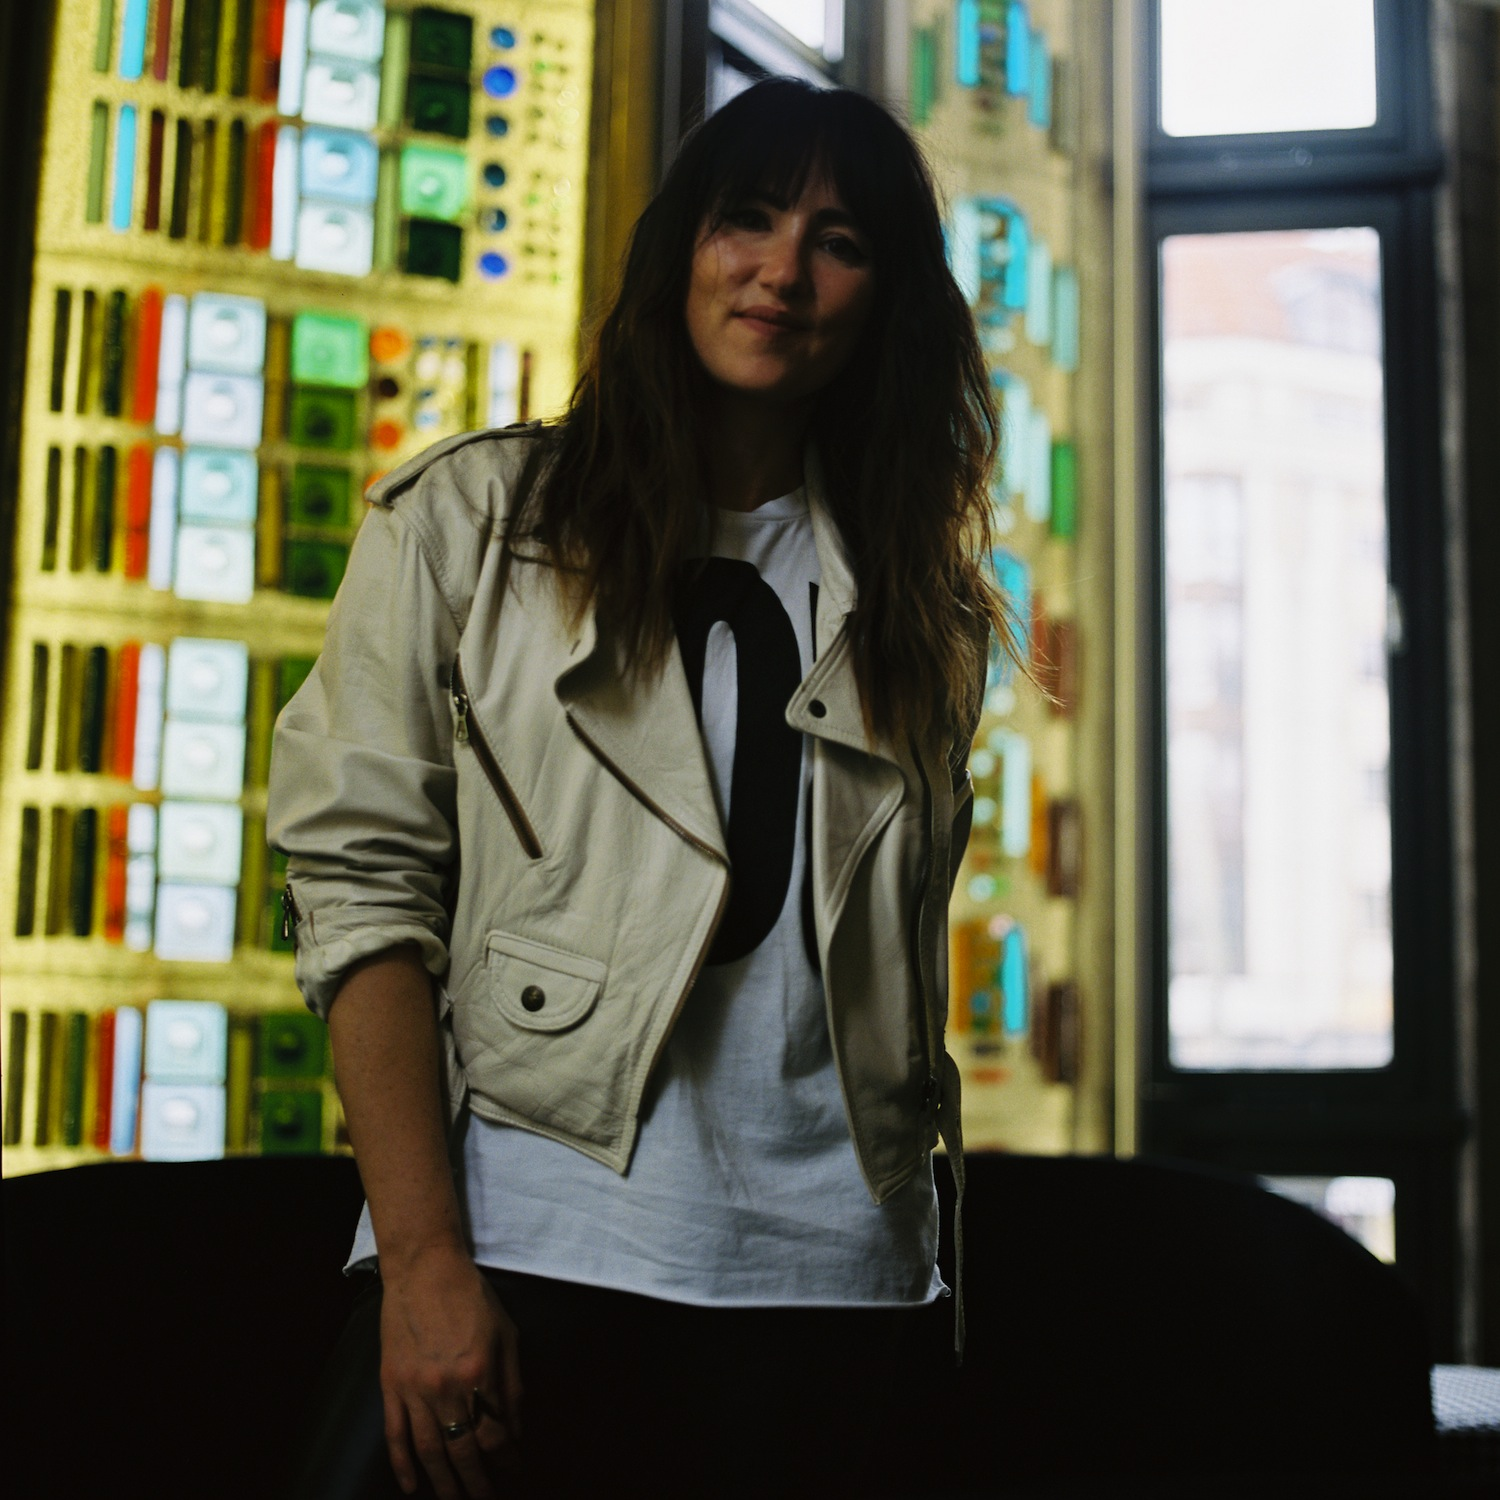 KT Tunstall before her gig in Berlin's Friedrichstadt Palast